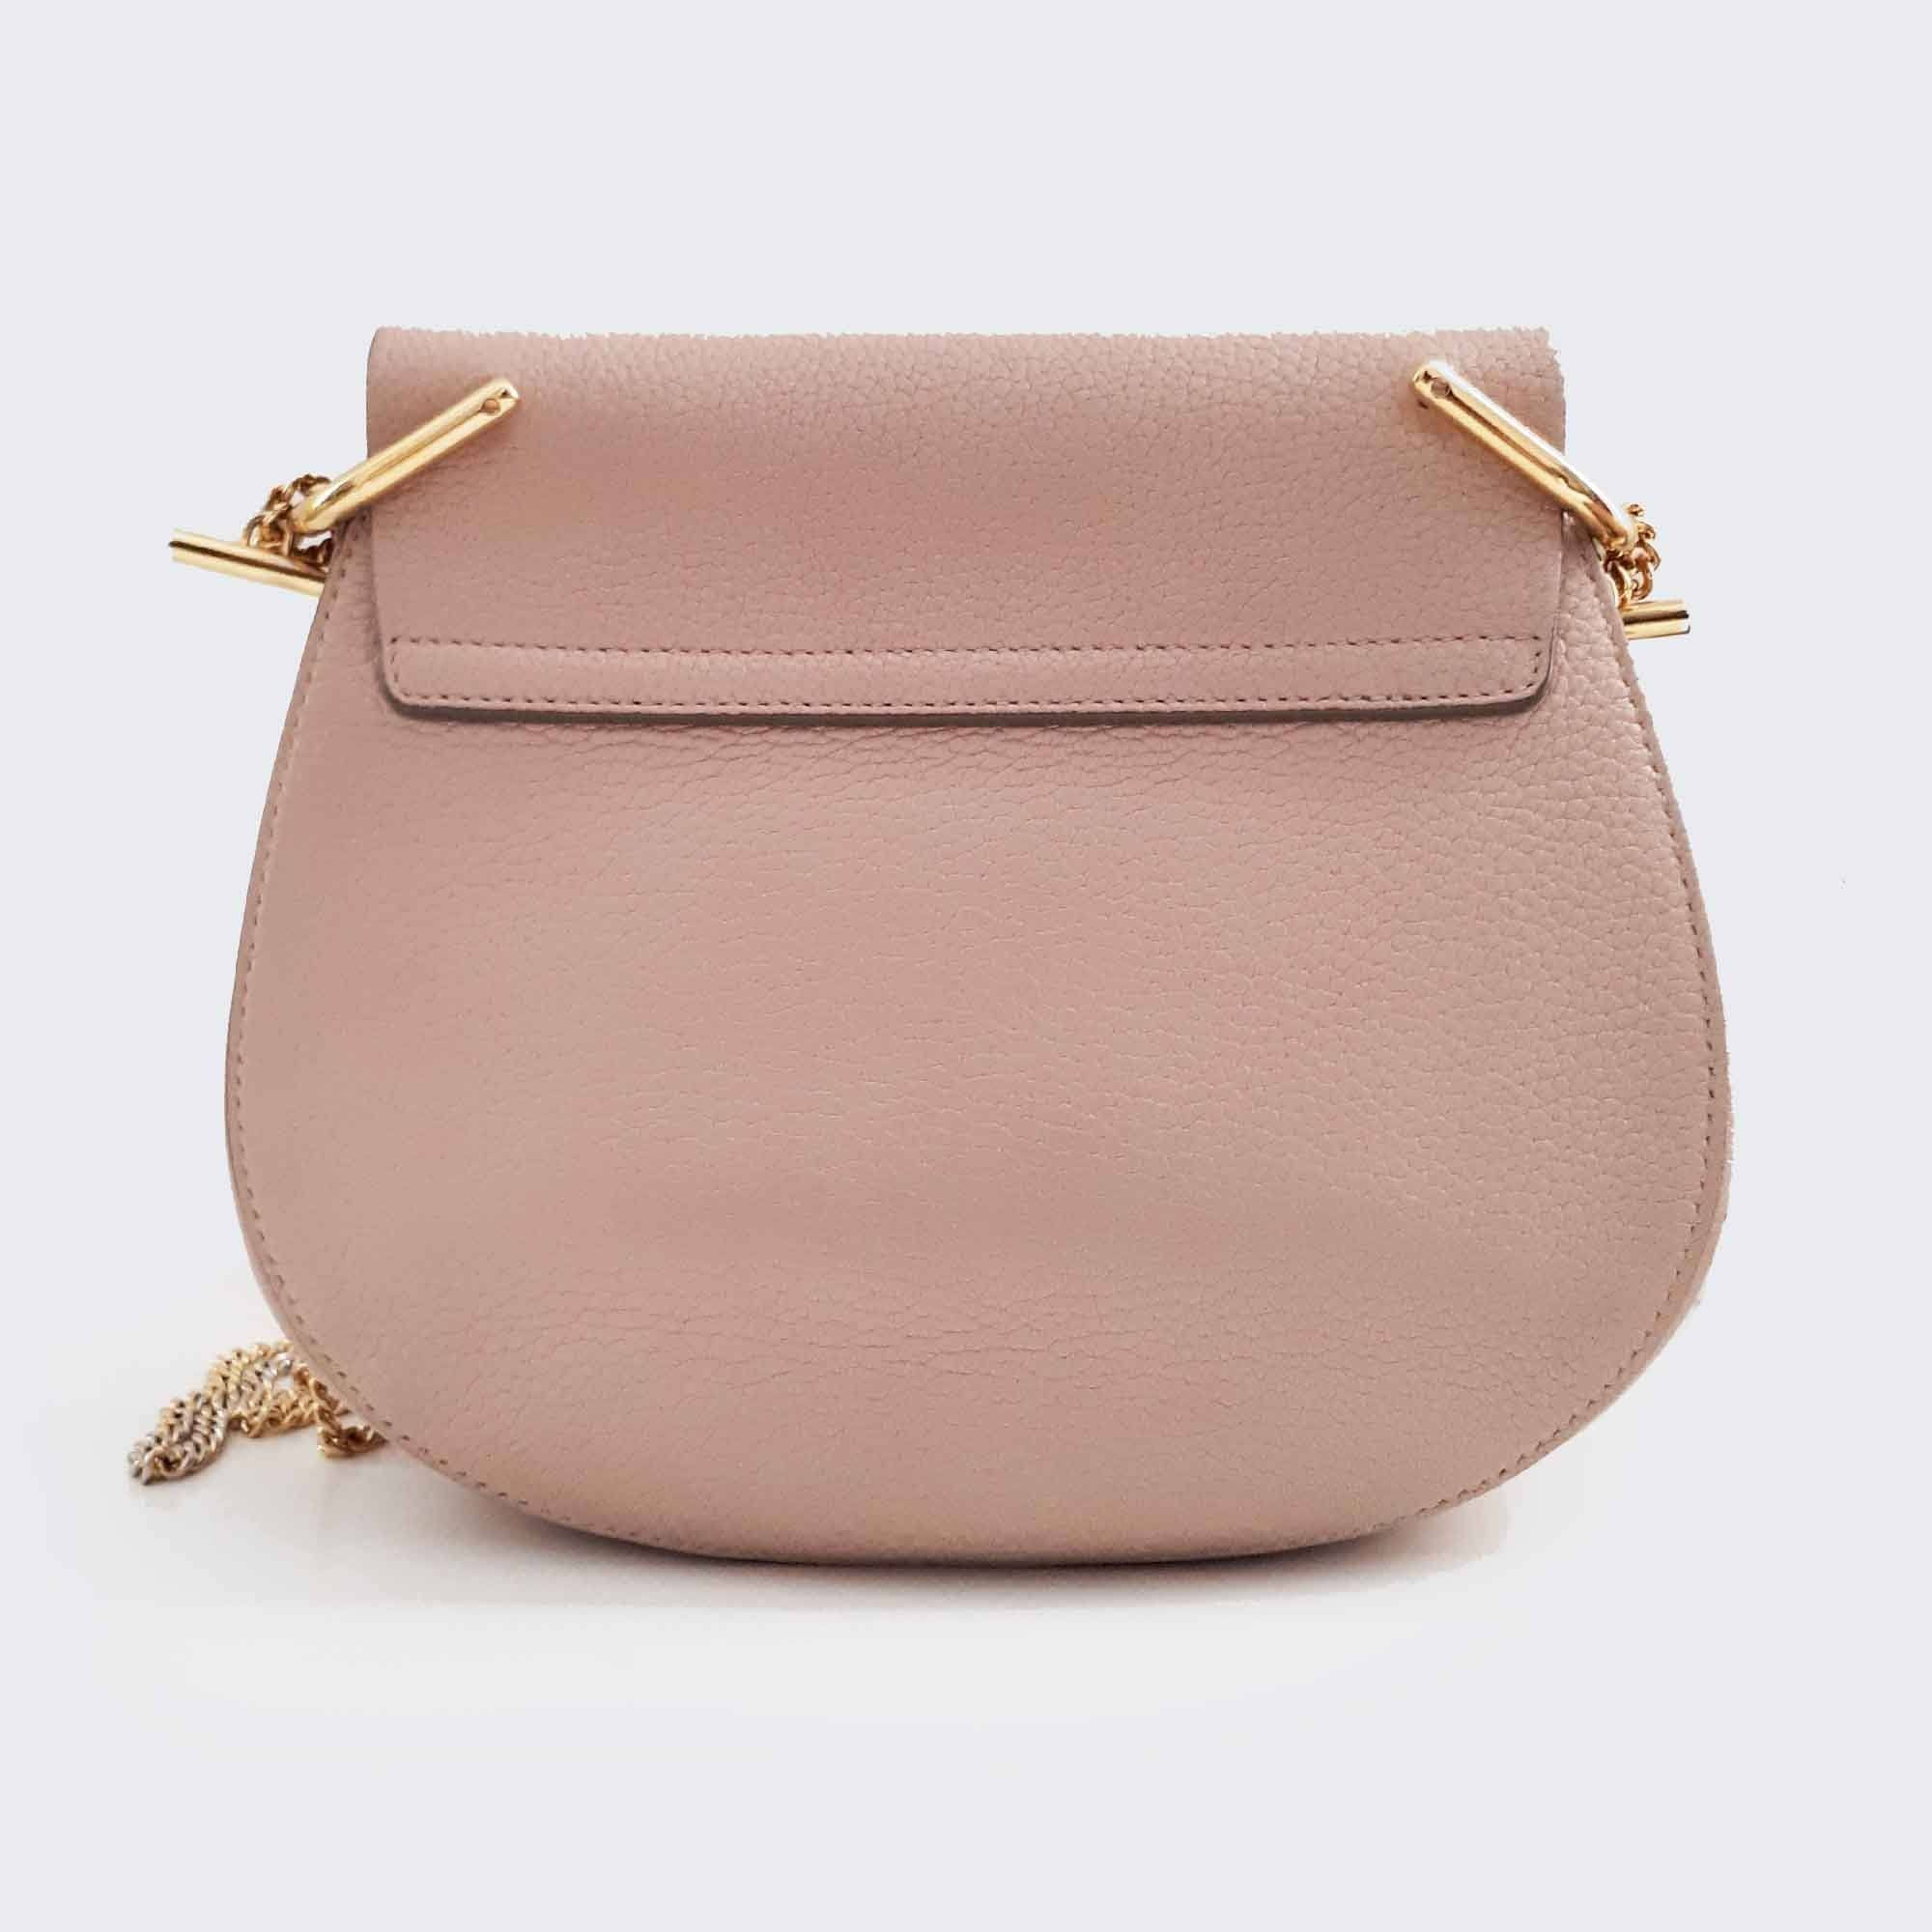 Chloé Light Pink Small Drew Shoulder Bag